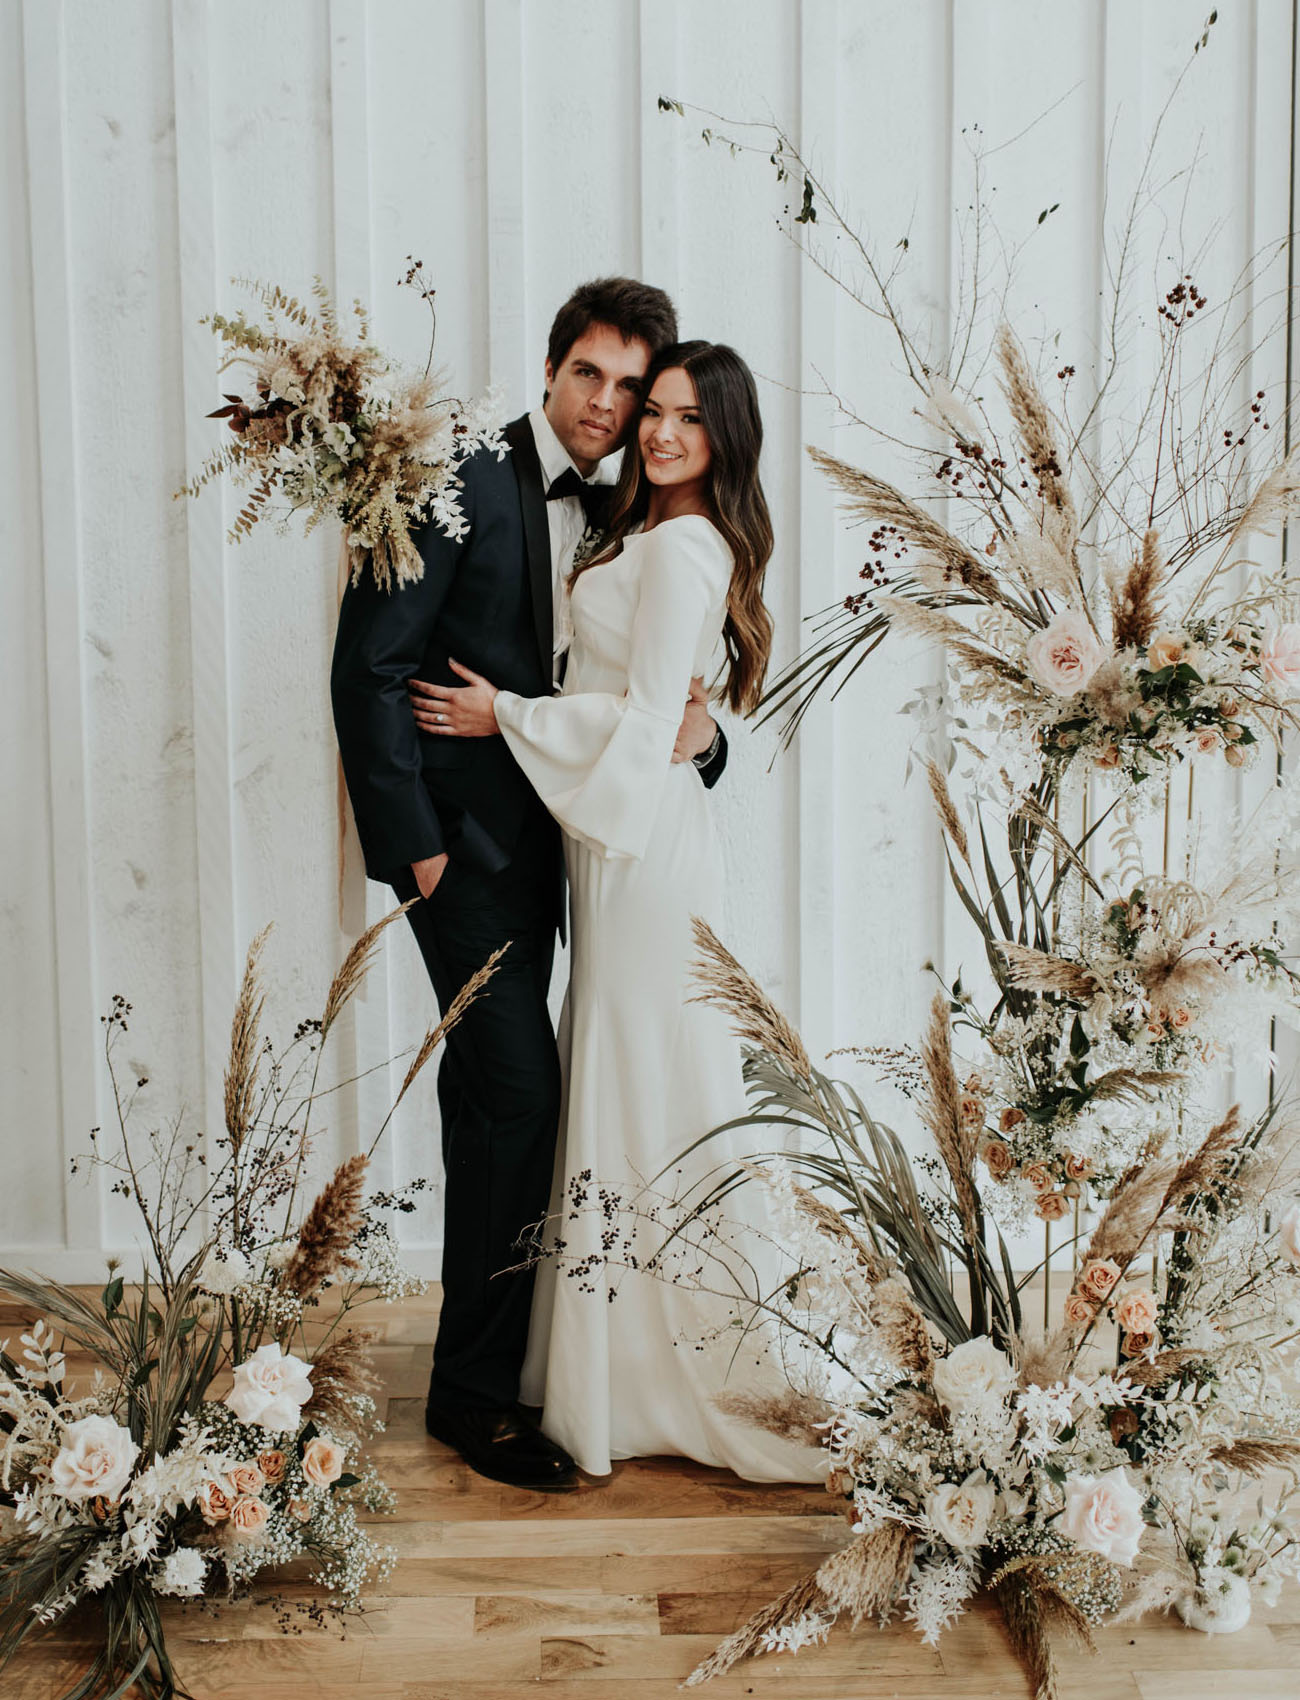 Wedding couple at modern boho wedding ceremony with dried flowers